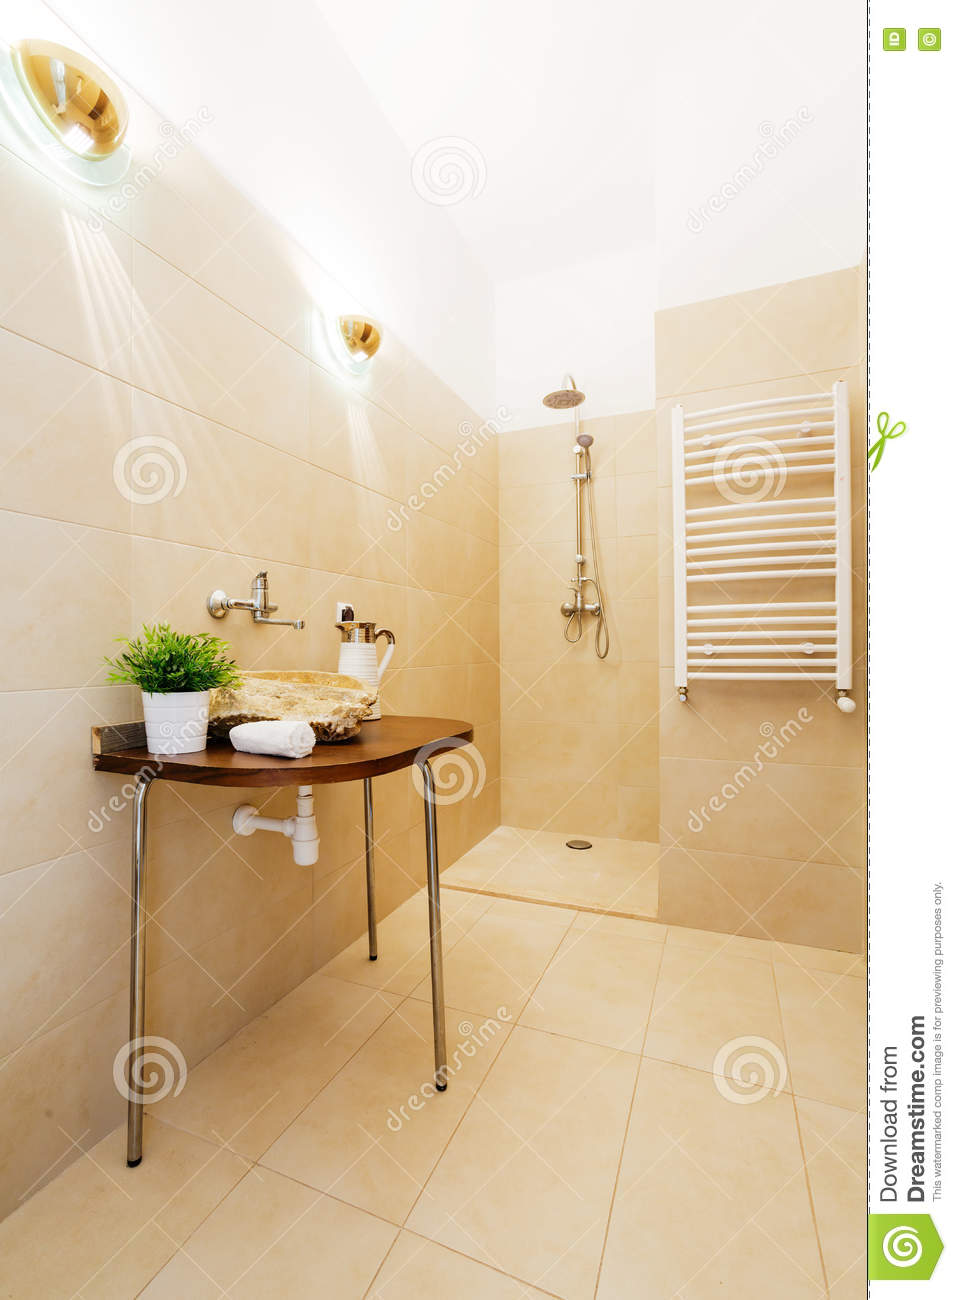 Download Uncommon Bathroom Solutions Adding Significance To The Interior  Stock Photo   Image Of Luxurious,